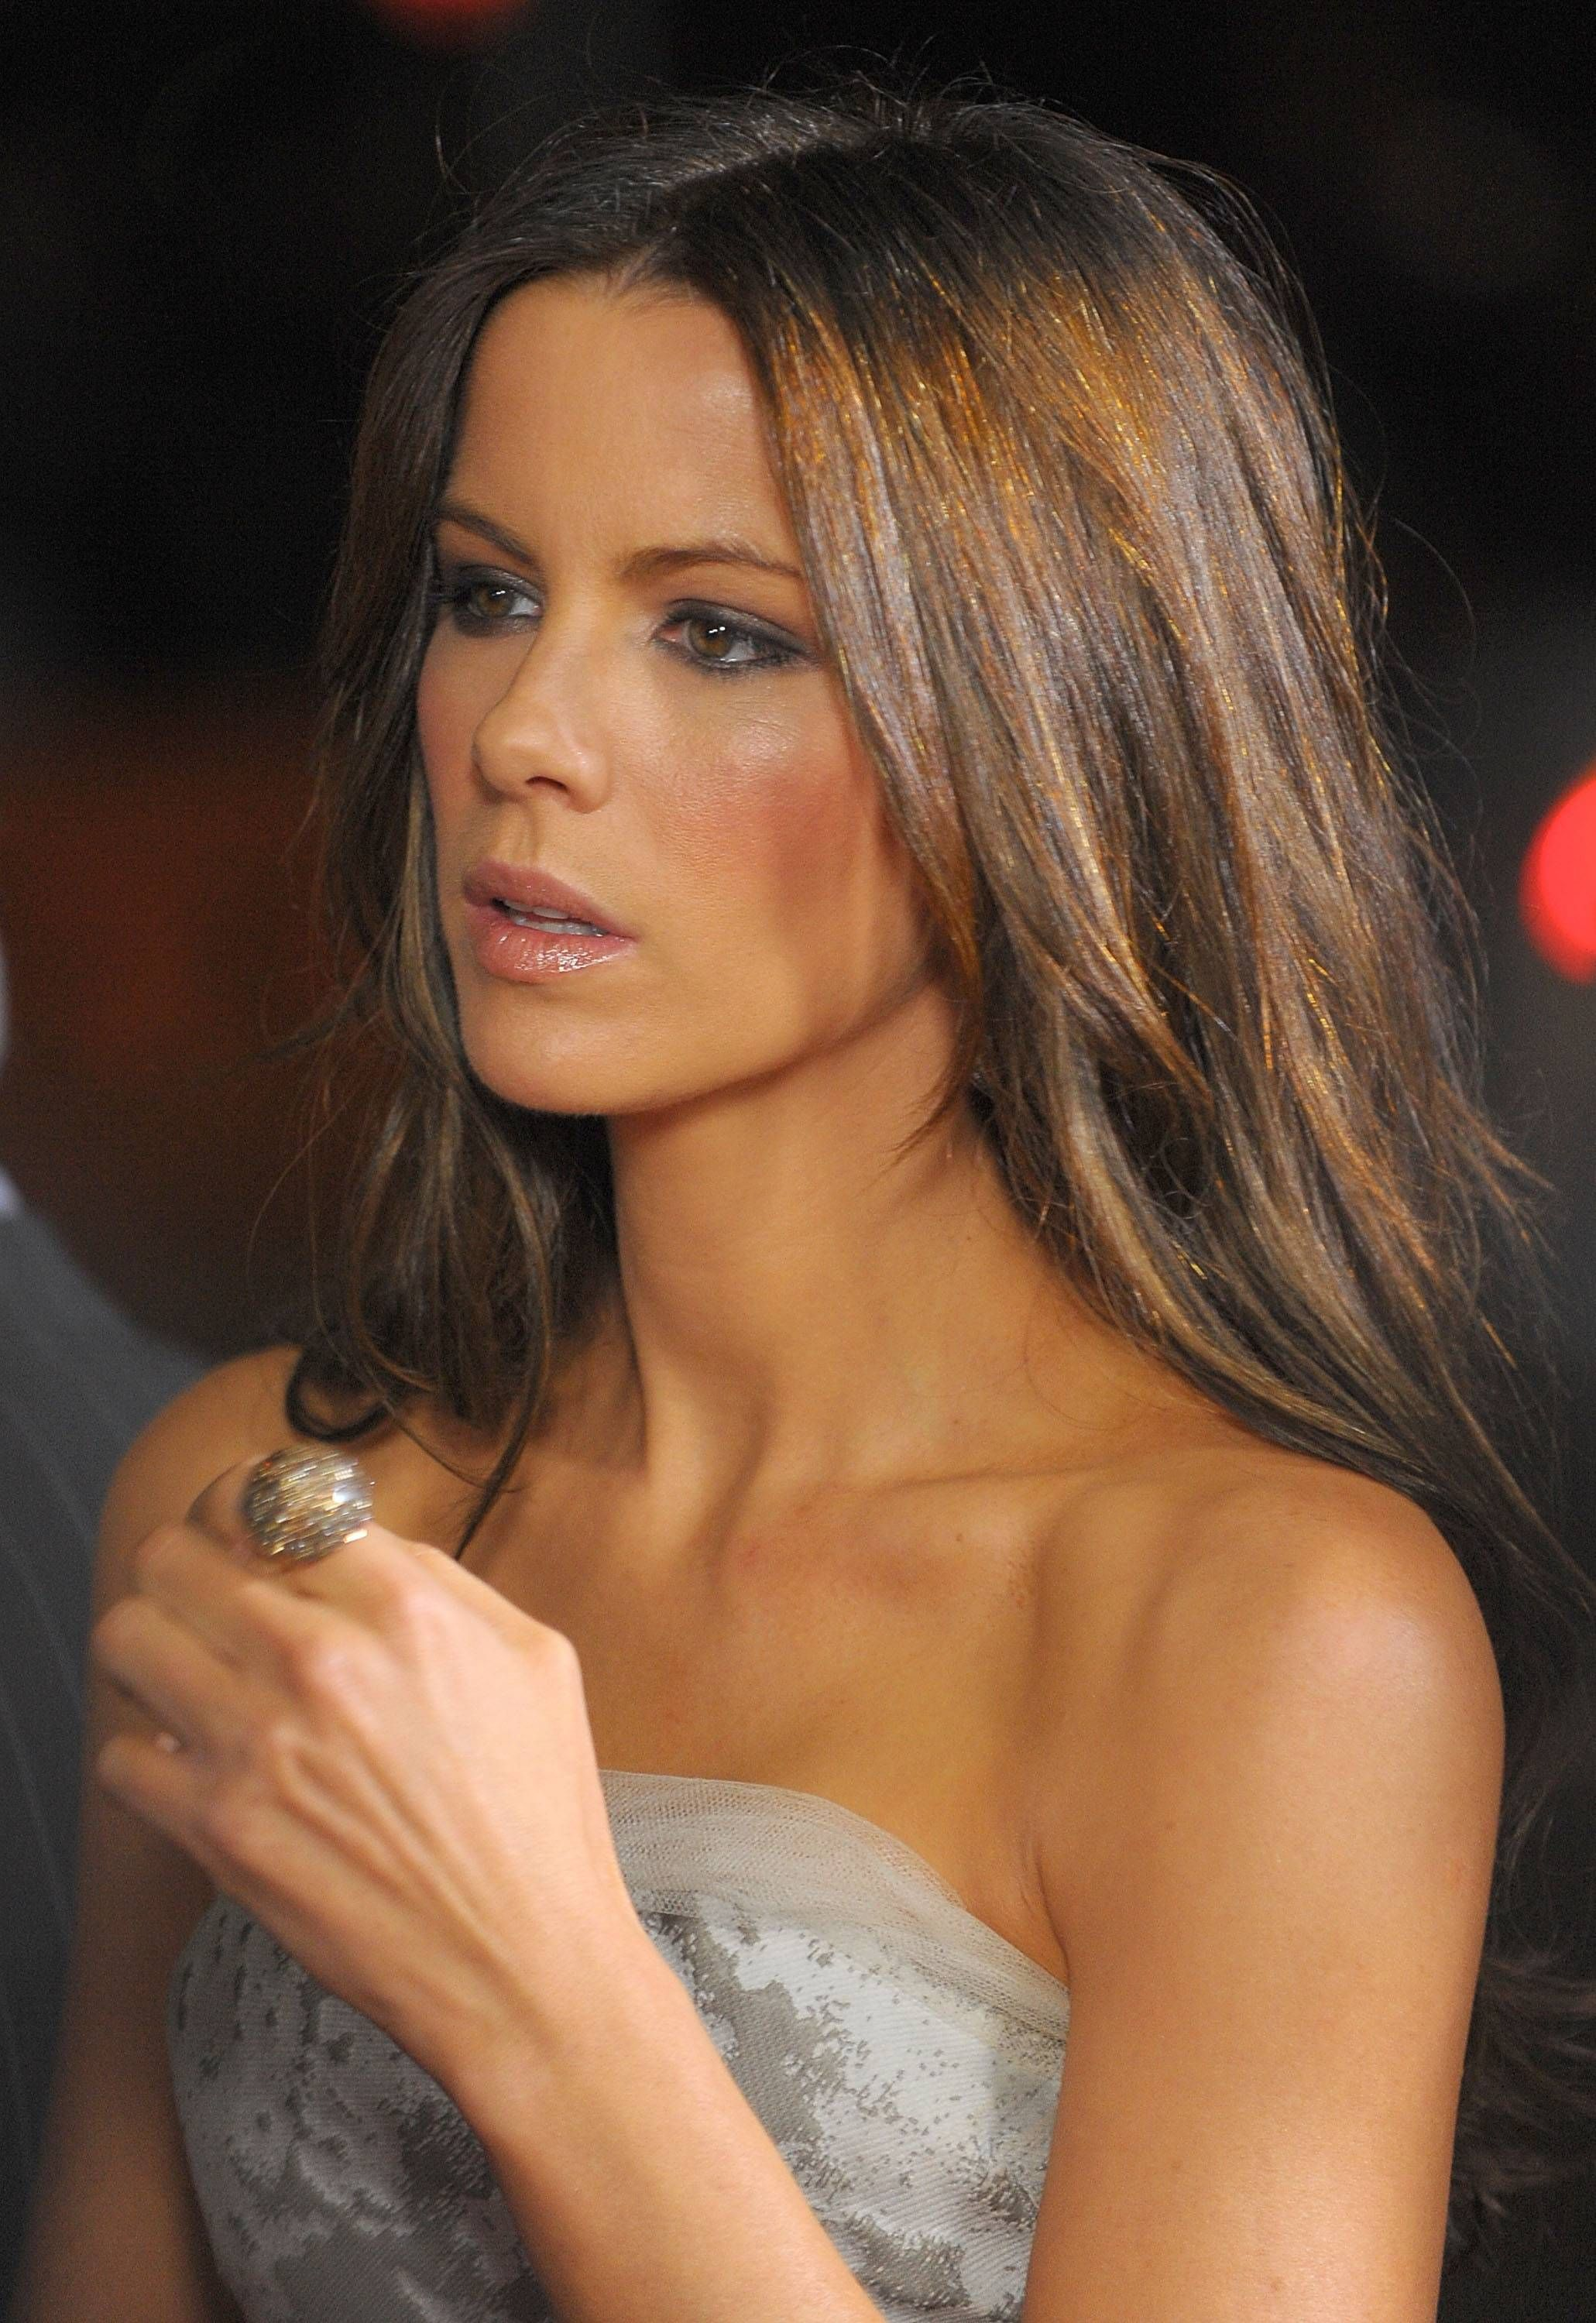 Top Rated Face Cream For Wrinkles Kate beckinsale hair